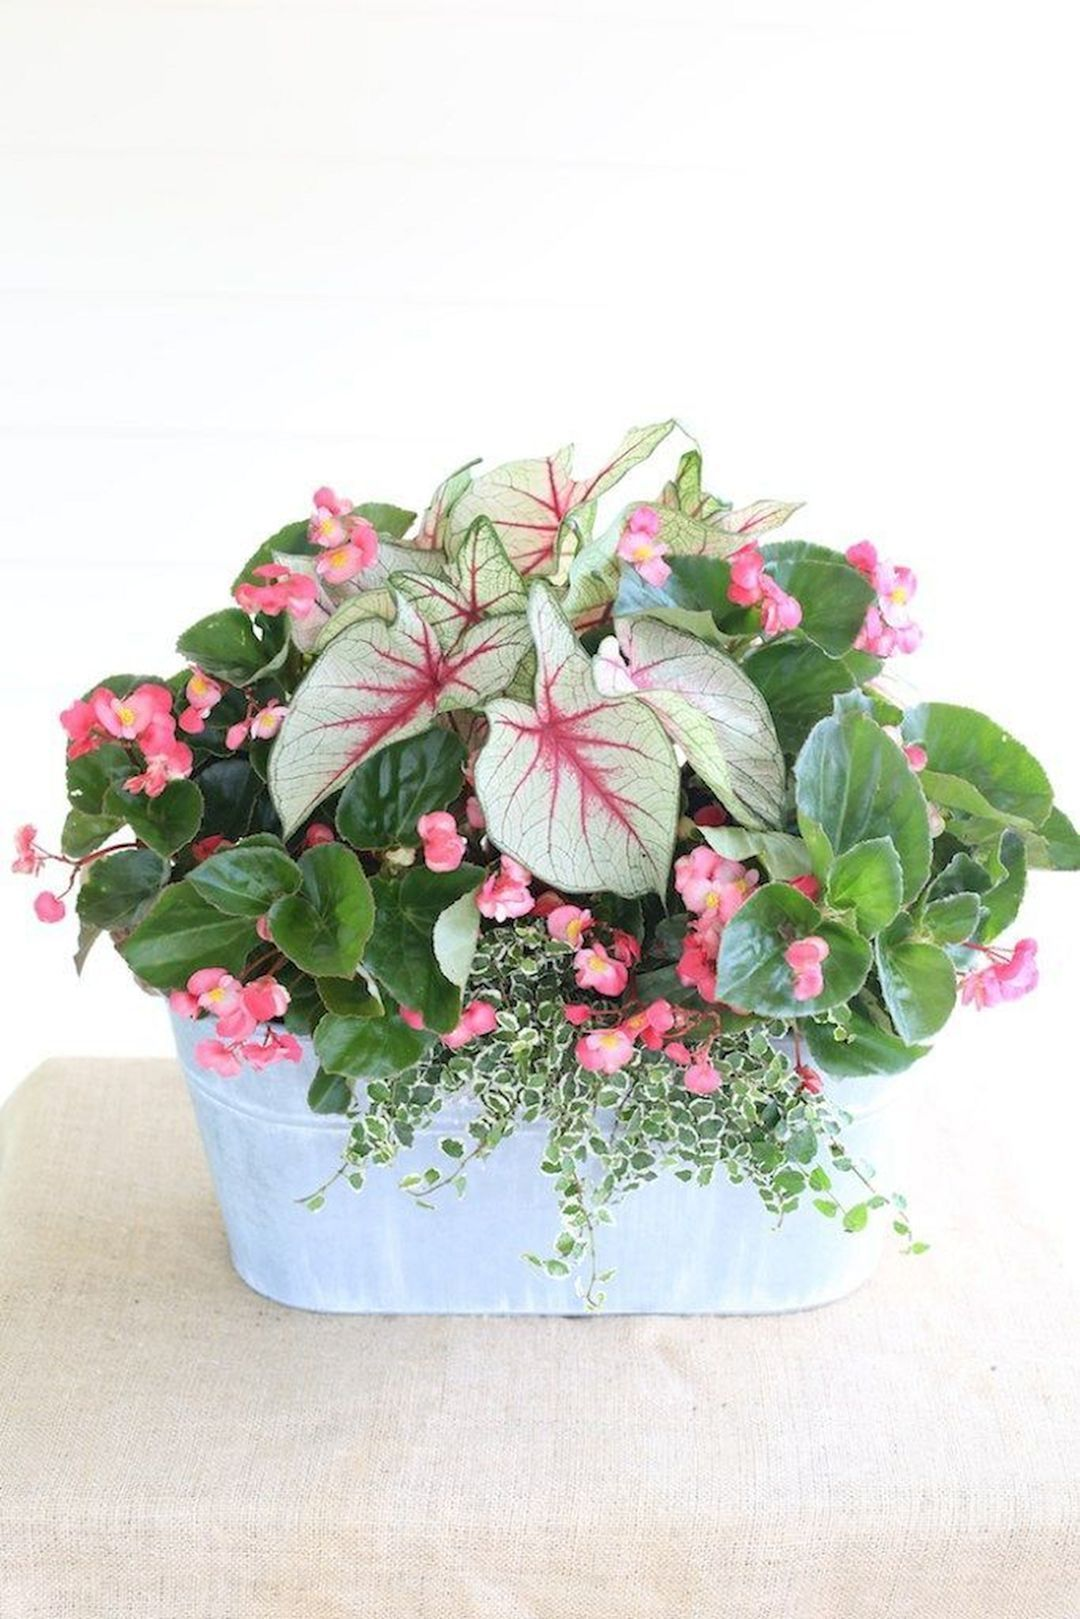 Outstanding 33 Beautiful Container Gardening Flowers Ideas For Your